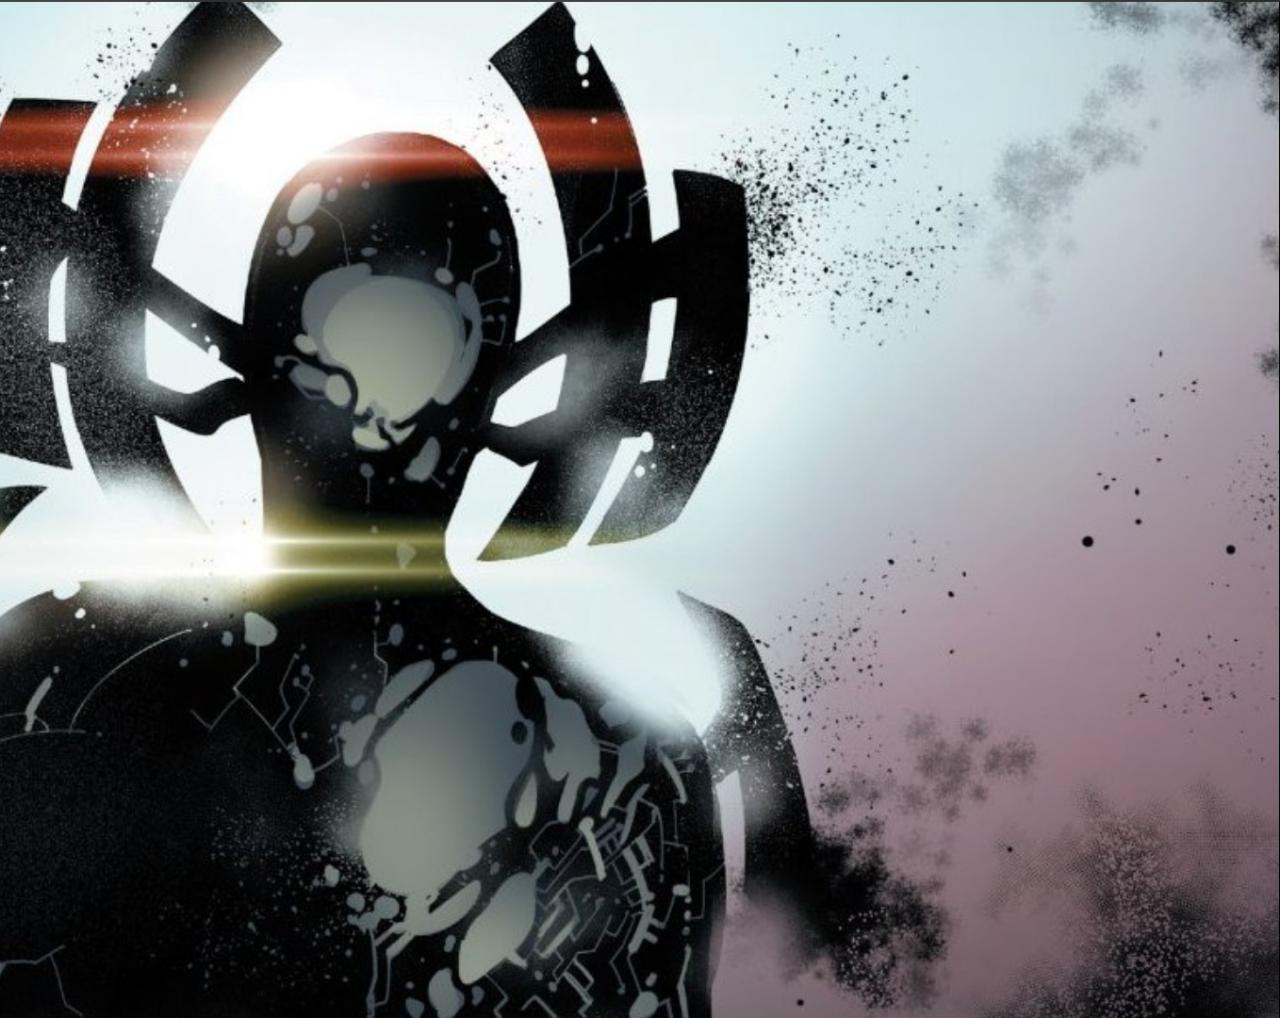 Powers of X: While the X-Men evolve, will humans finally reach the singularity?